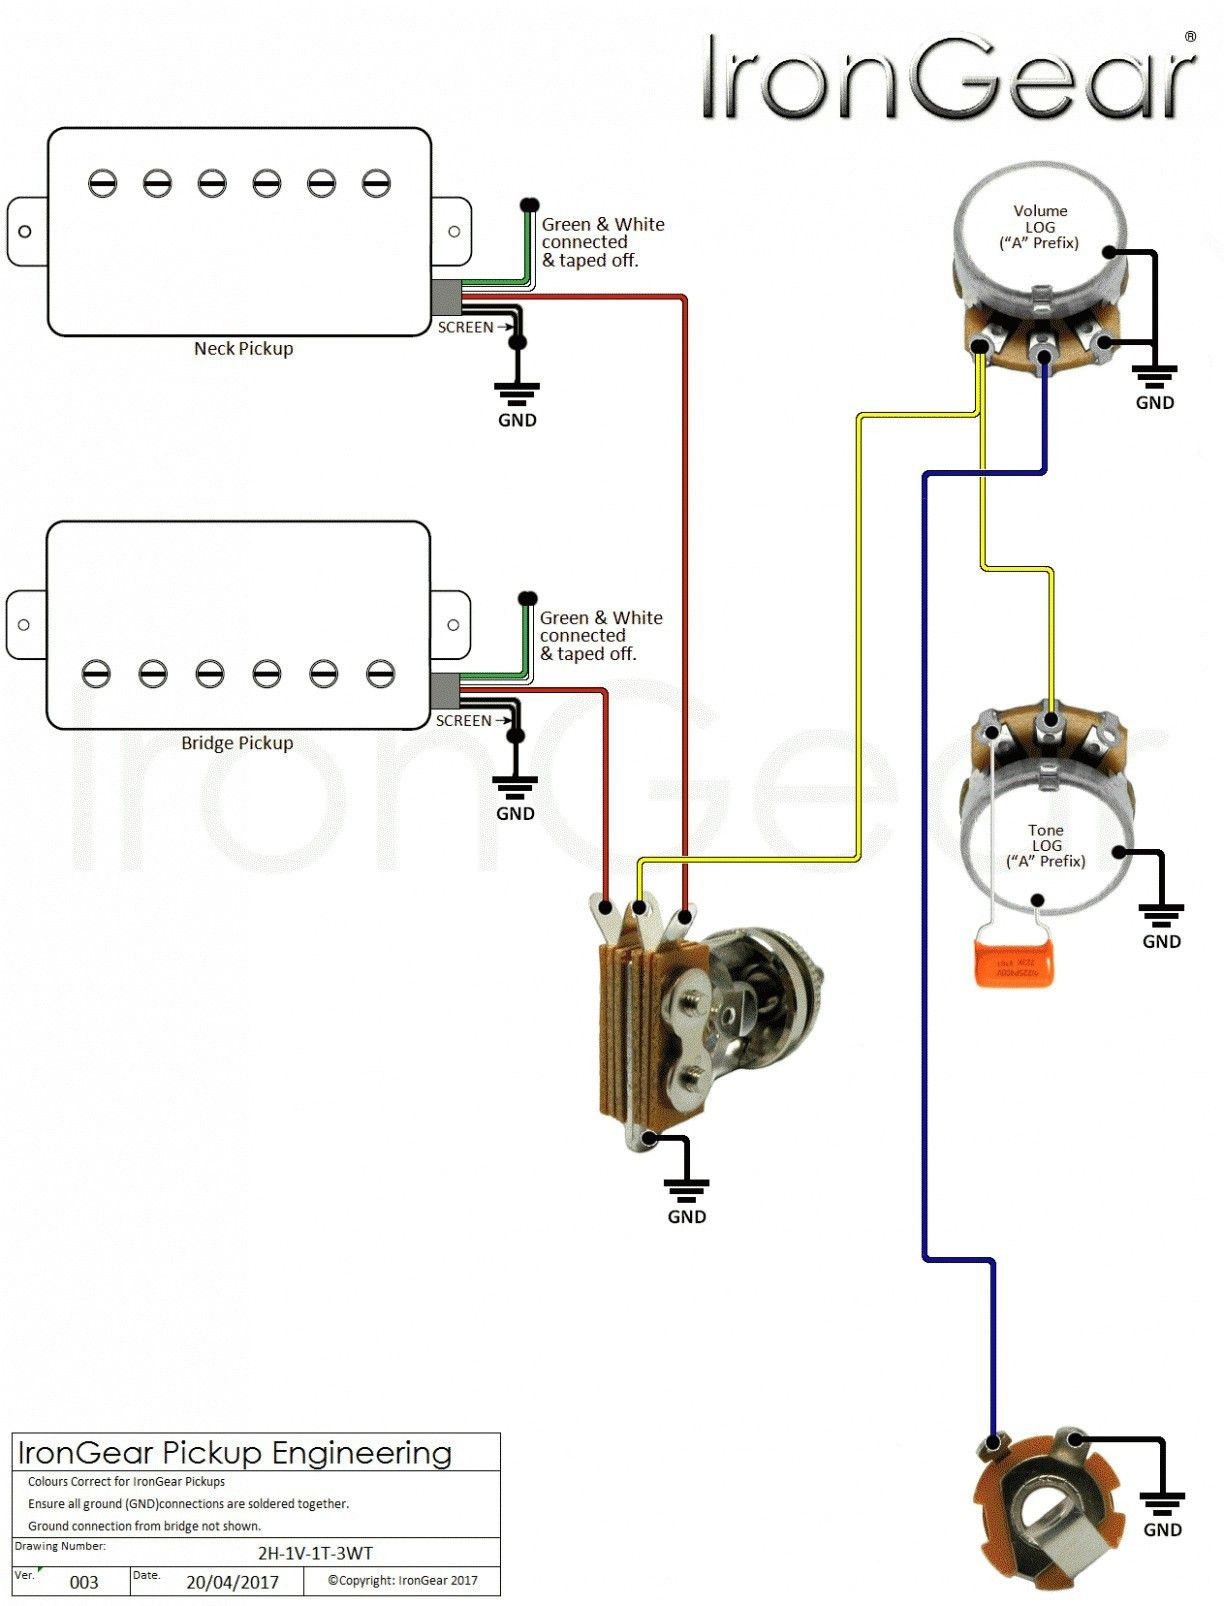 Gibson Paul Standard Wiring Diagram Unique Gibson Sg Guitar Wiring Diagram Save Wiring Diagram For Gibson ก ตาร ไฟฟ า ก ตาร